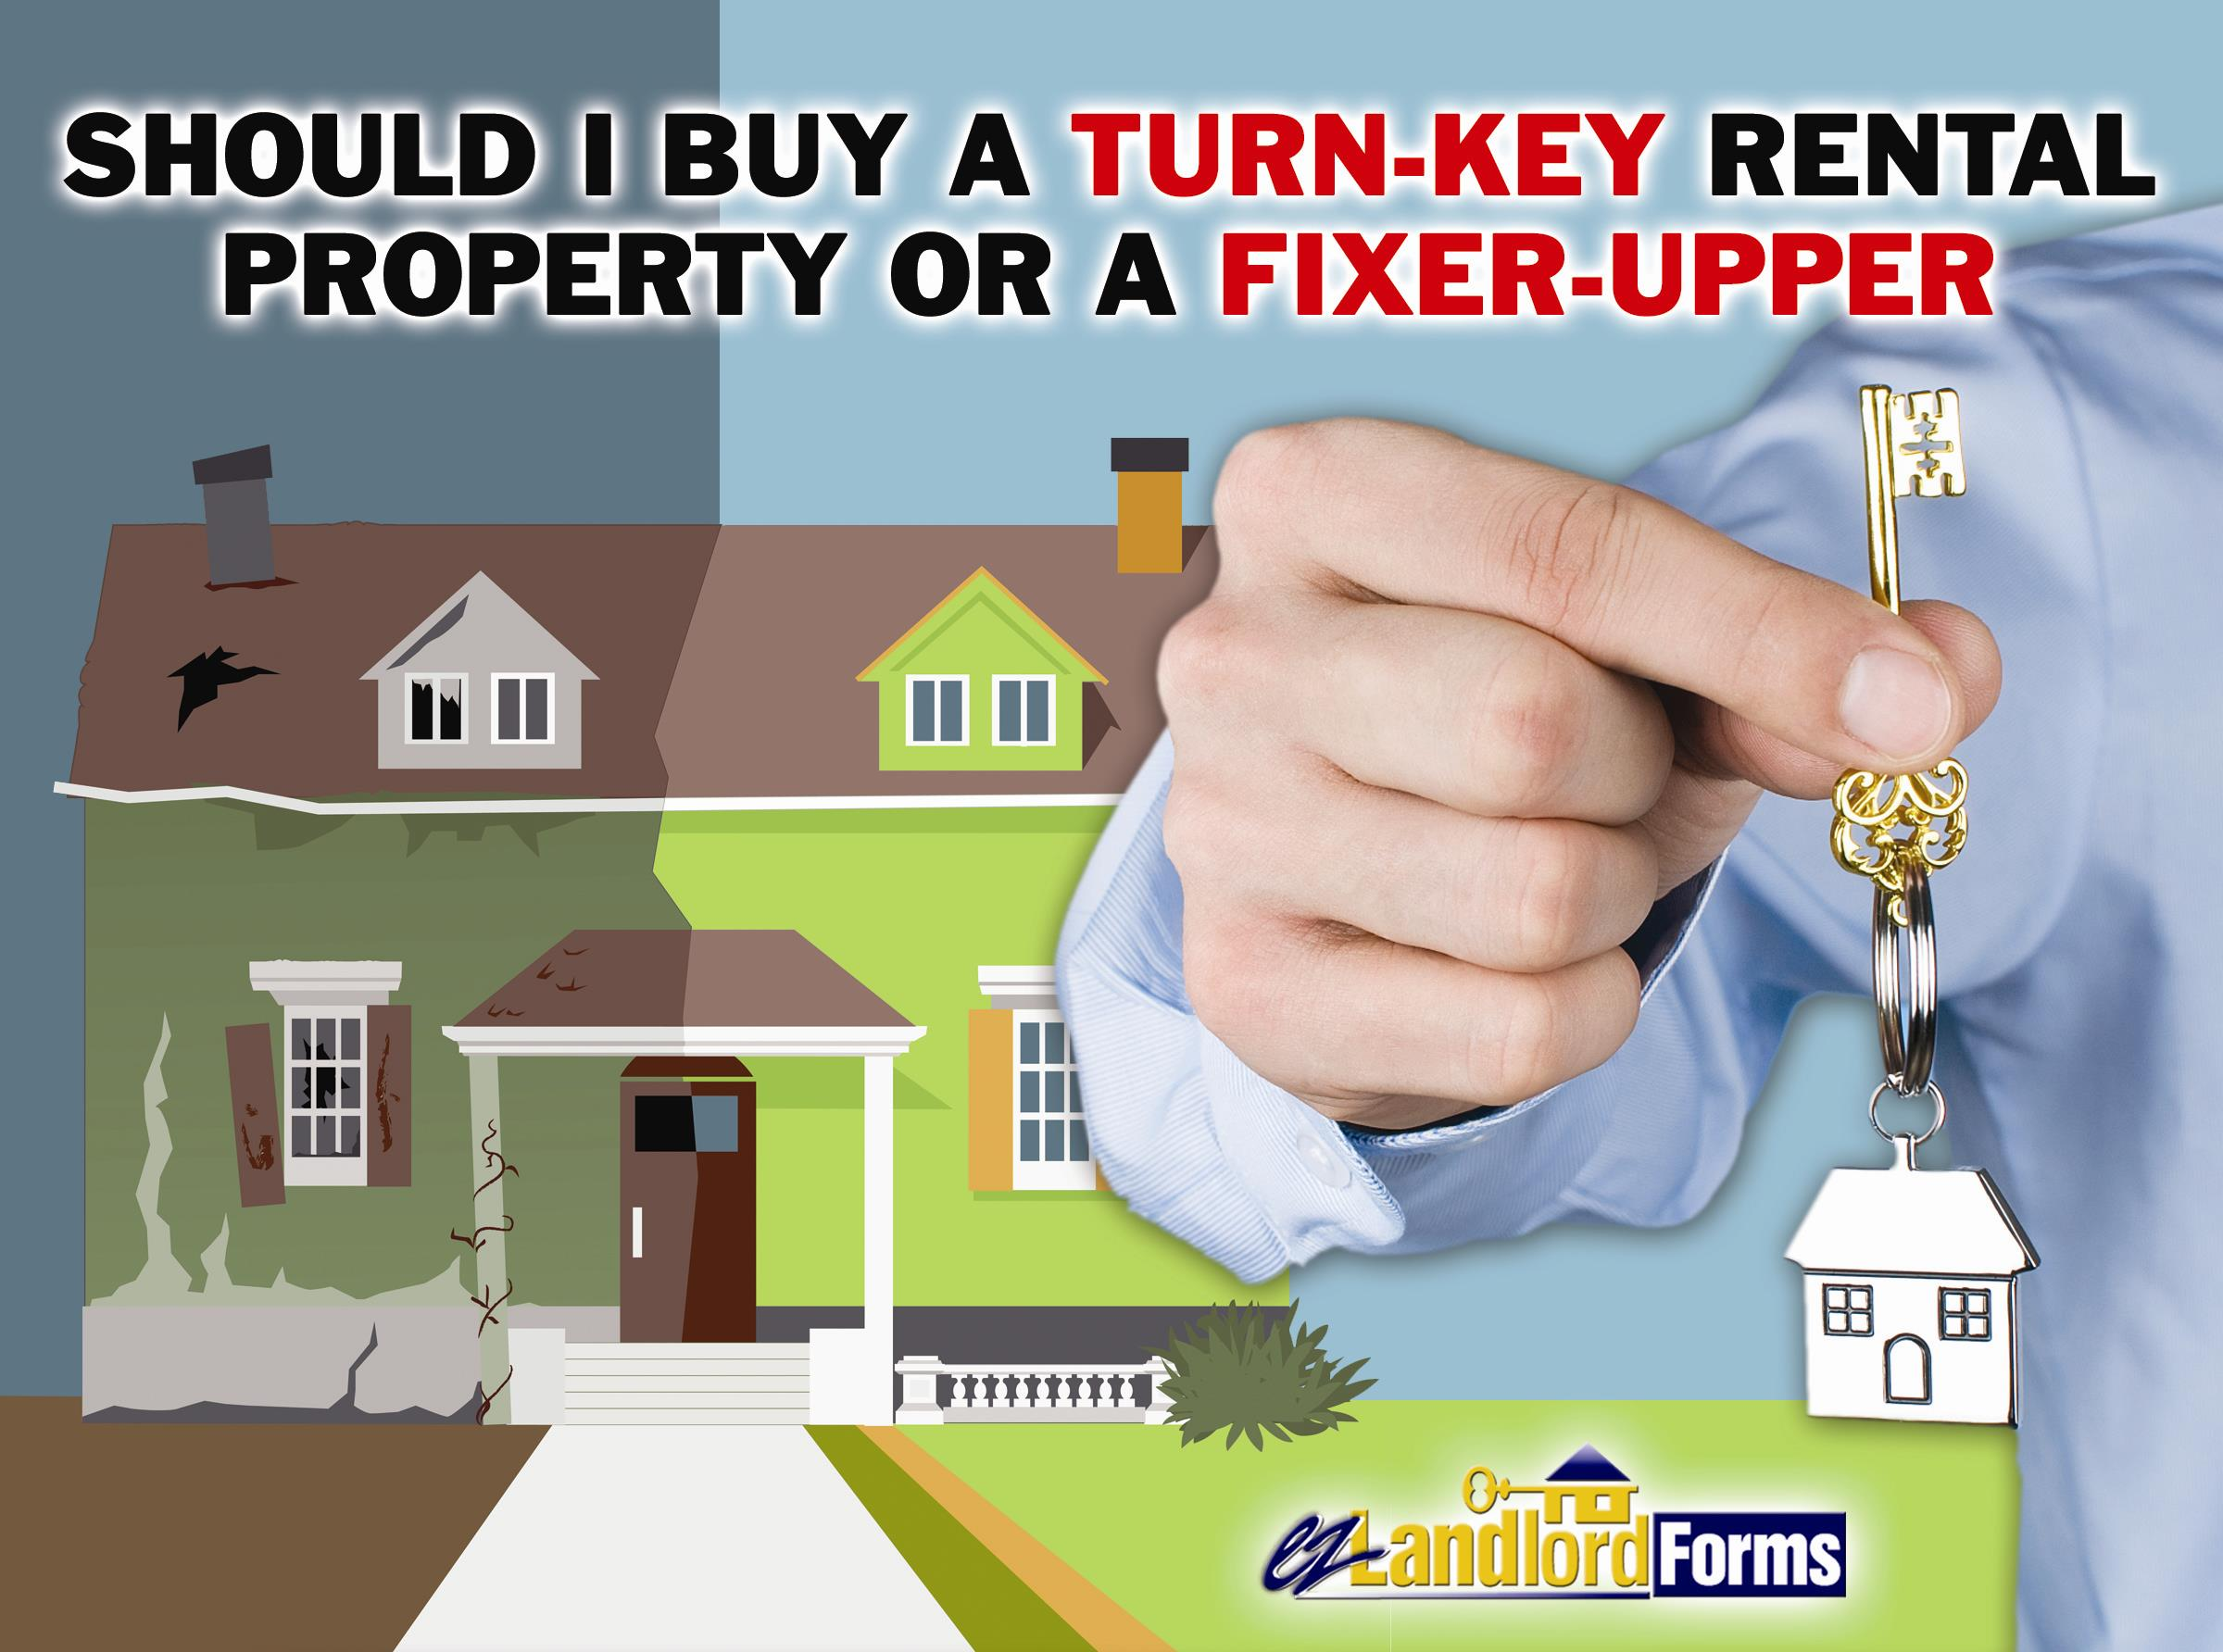 Should_I_Buy_a_Turn-Key_Rental_Property_or_a_Fixer-Upper_V4